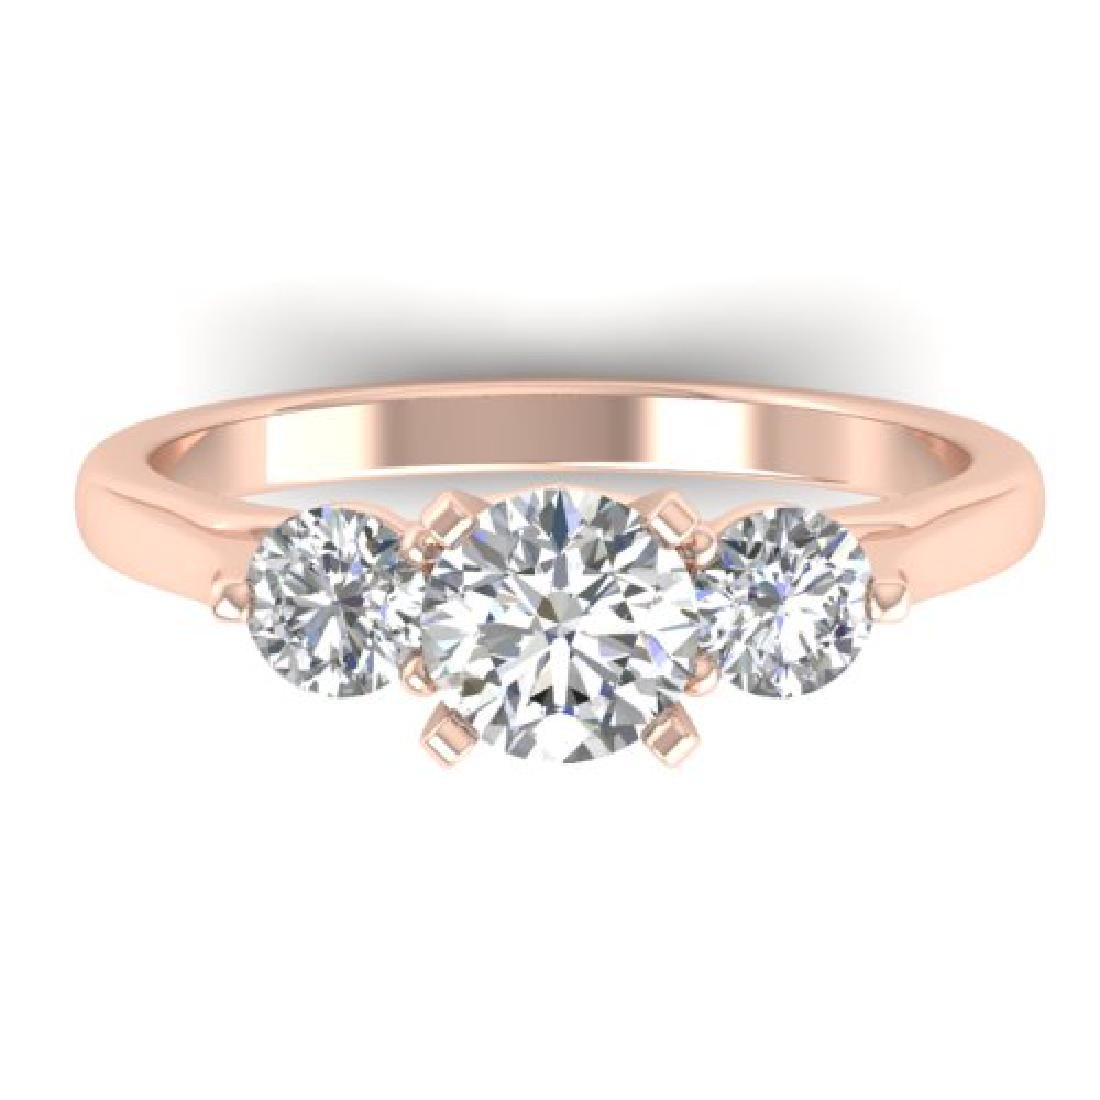 1.37 CTW Certified VS/SI Diamond Art Deco 3 Stone Ring